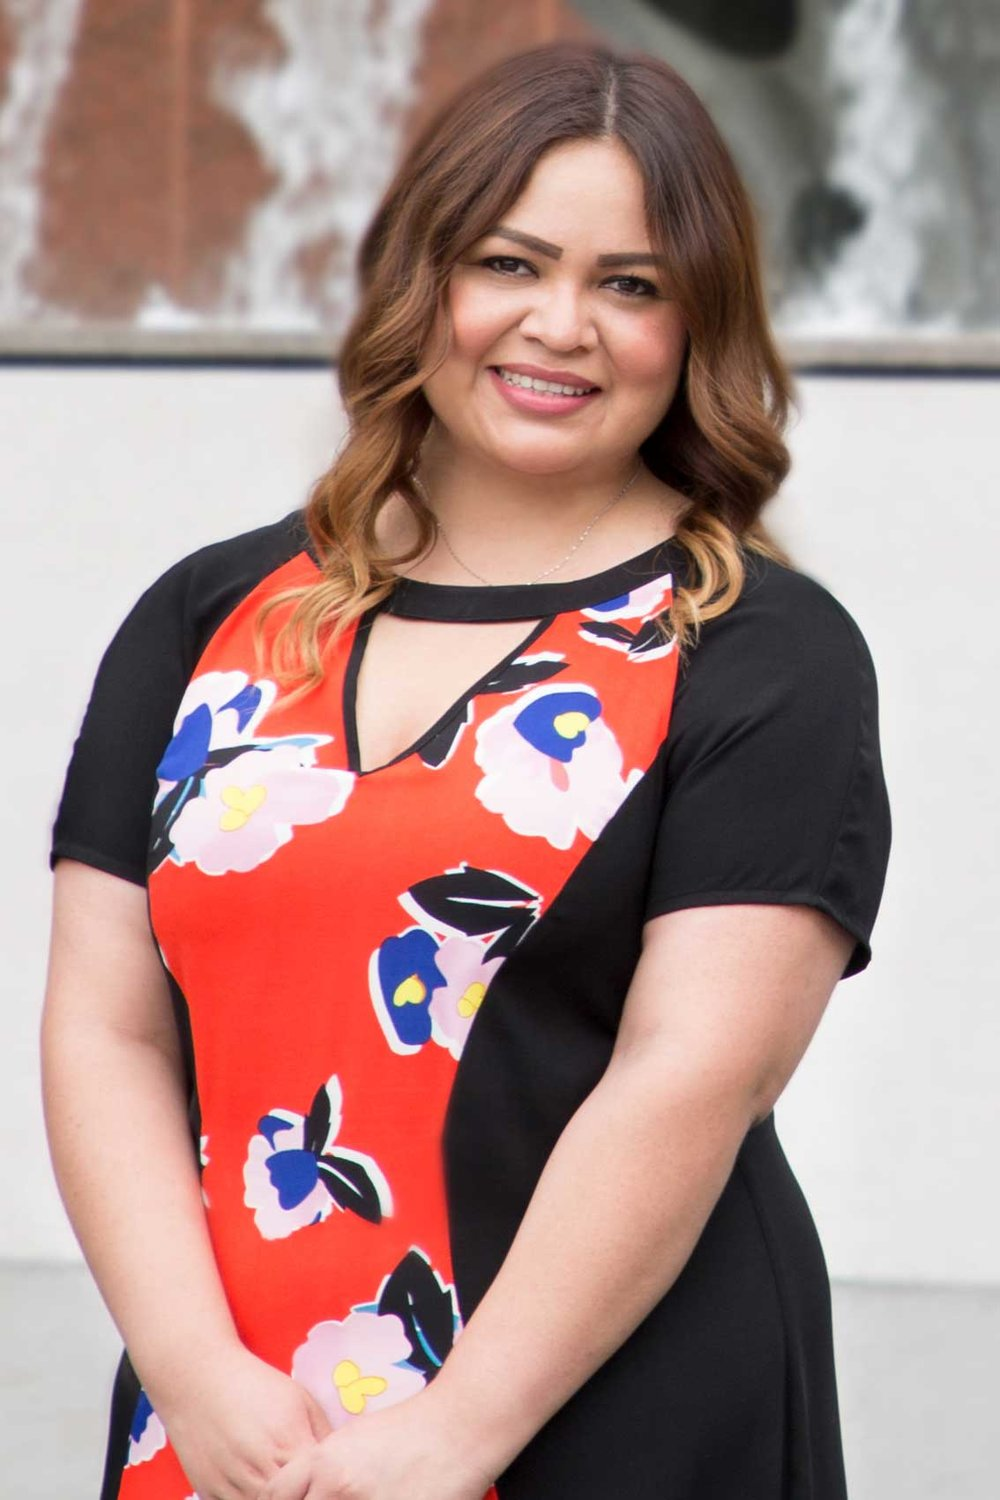 Grethel Fuentes#Office Manager